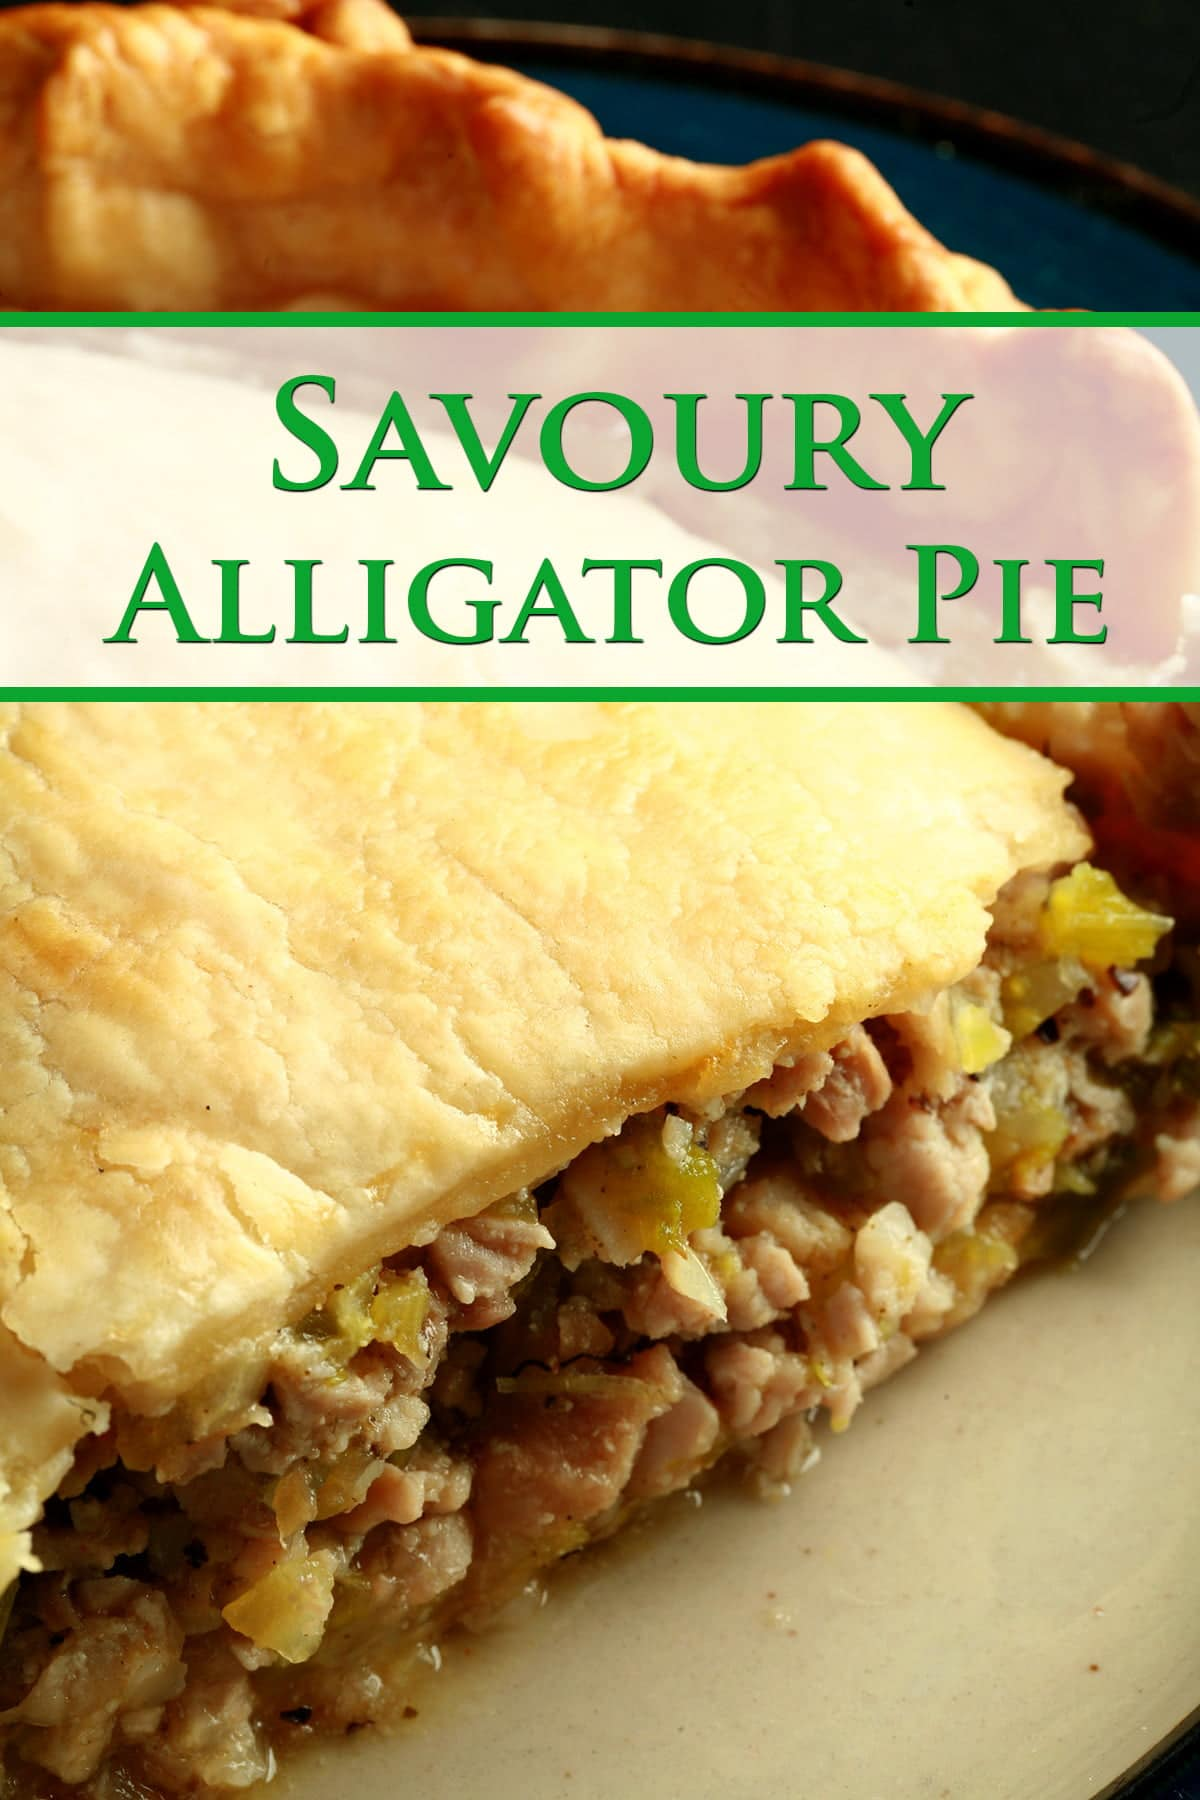 A slice of alligator pie, on a small white plate. The filling shows chunks of meat and vegetables, like celery.